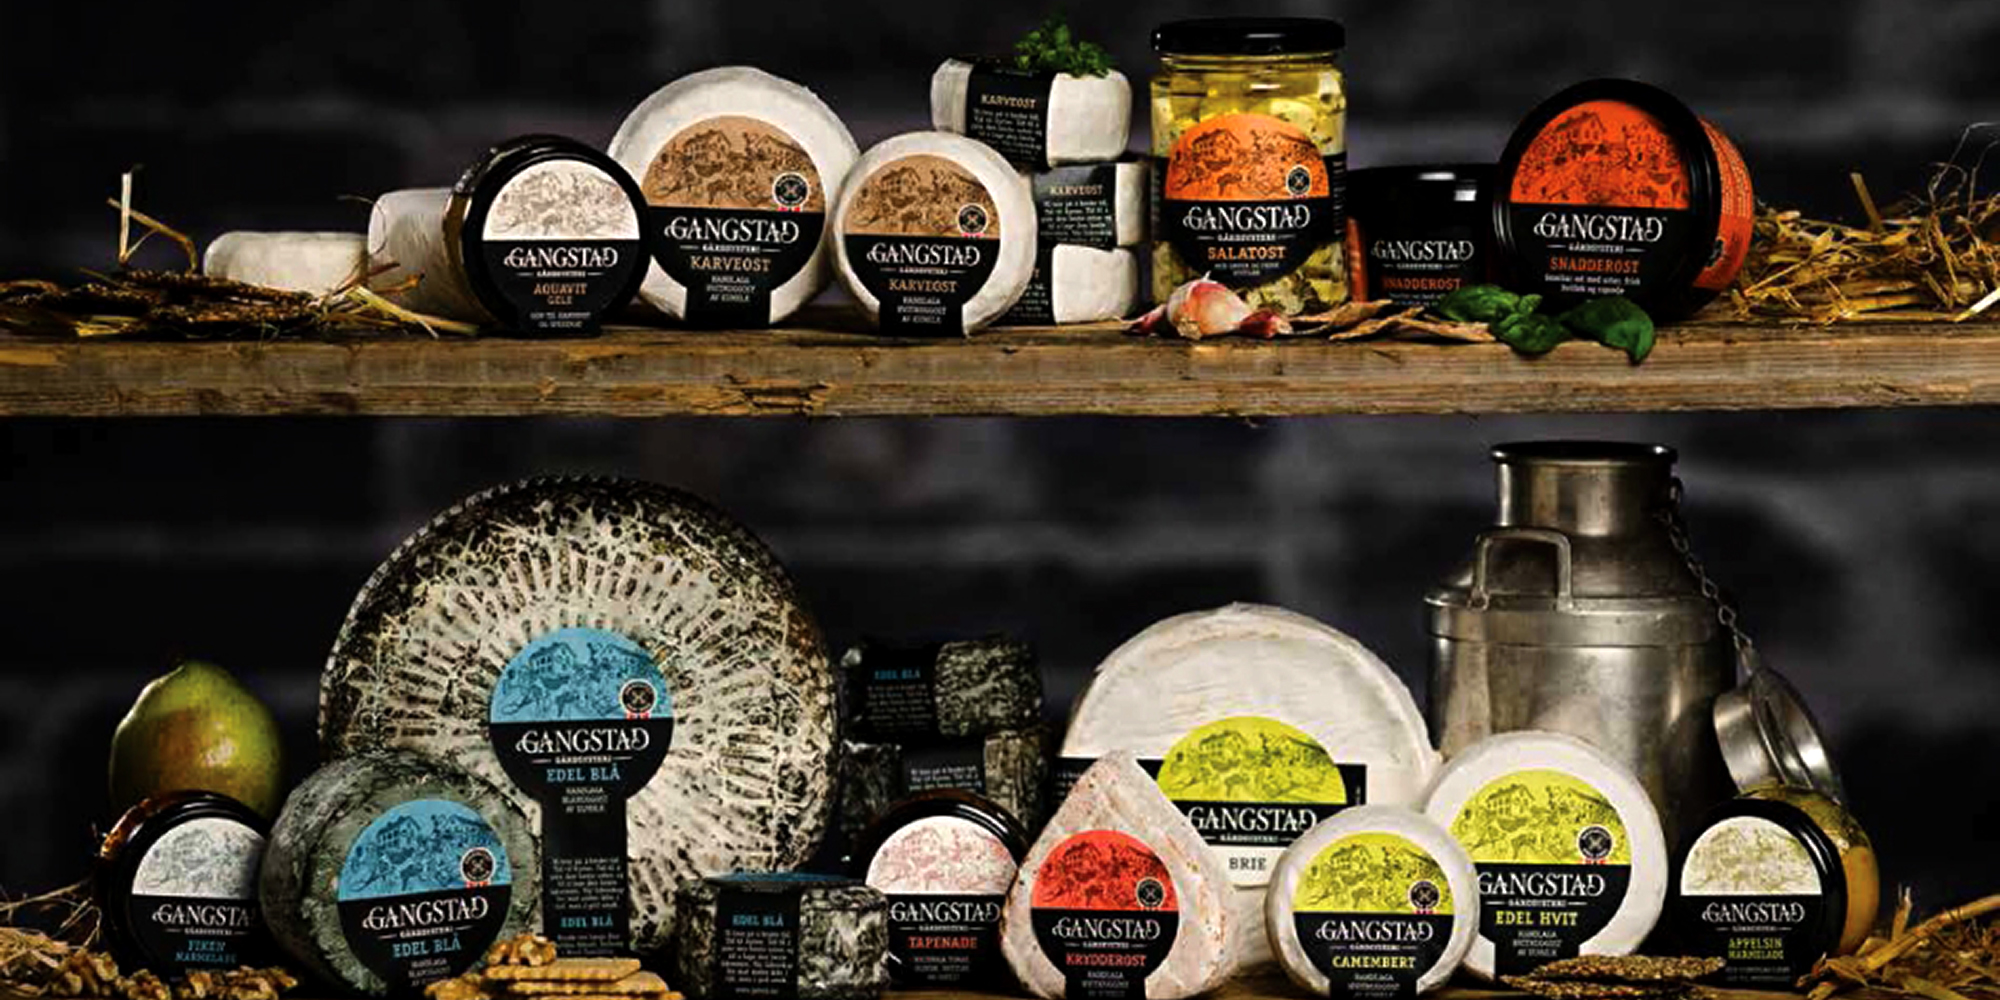 Gangstad gårdsysteri - the products. Copyright: Gangstad gårdsysteri